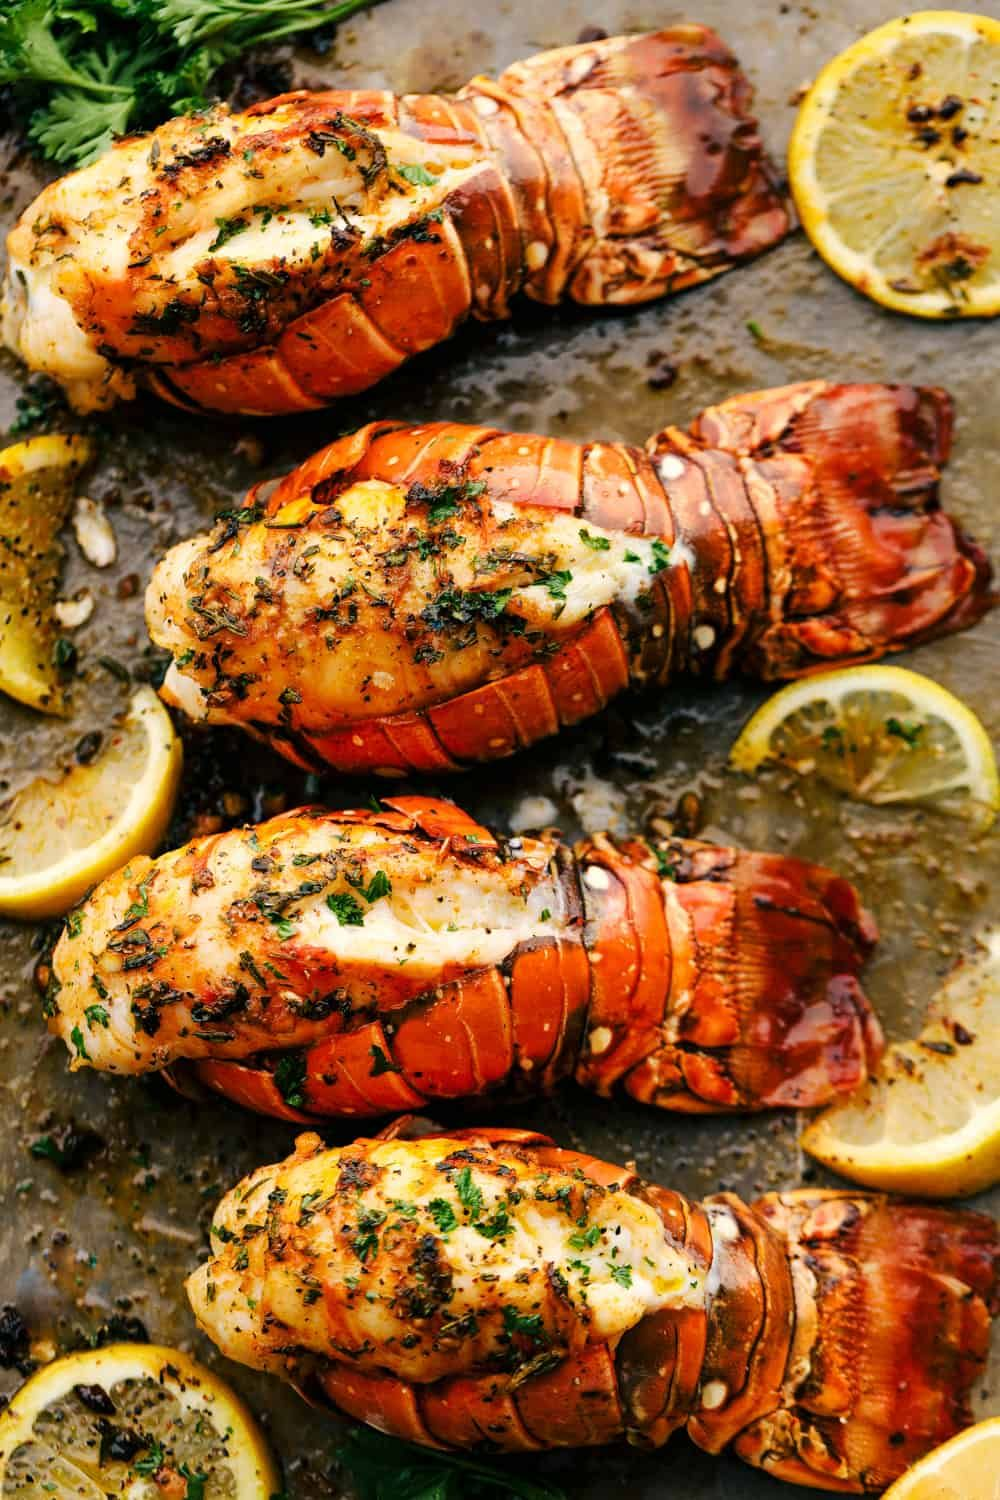 The Best Lobster Tail Recipe Ever is a decadent dinner made with large lobster tails smothered with a buttery garlic herb sauce then broiled under high heat making these lobster tails tender and juicy. The ultimate indulgence! Skip the restaurants and make your own fancy meal at home! Start off with Easiest Crab Cakes, add a side…